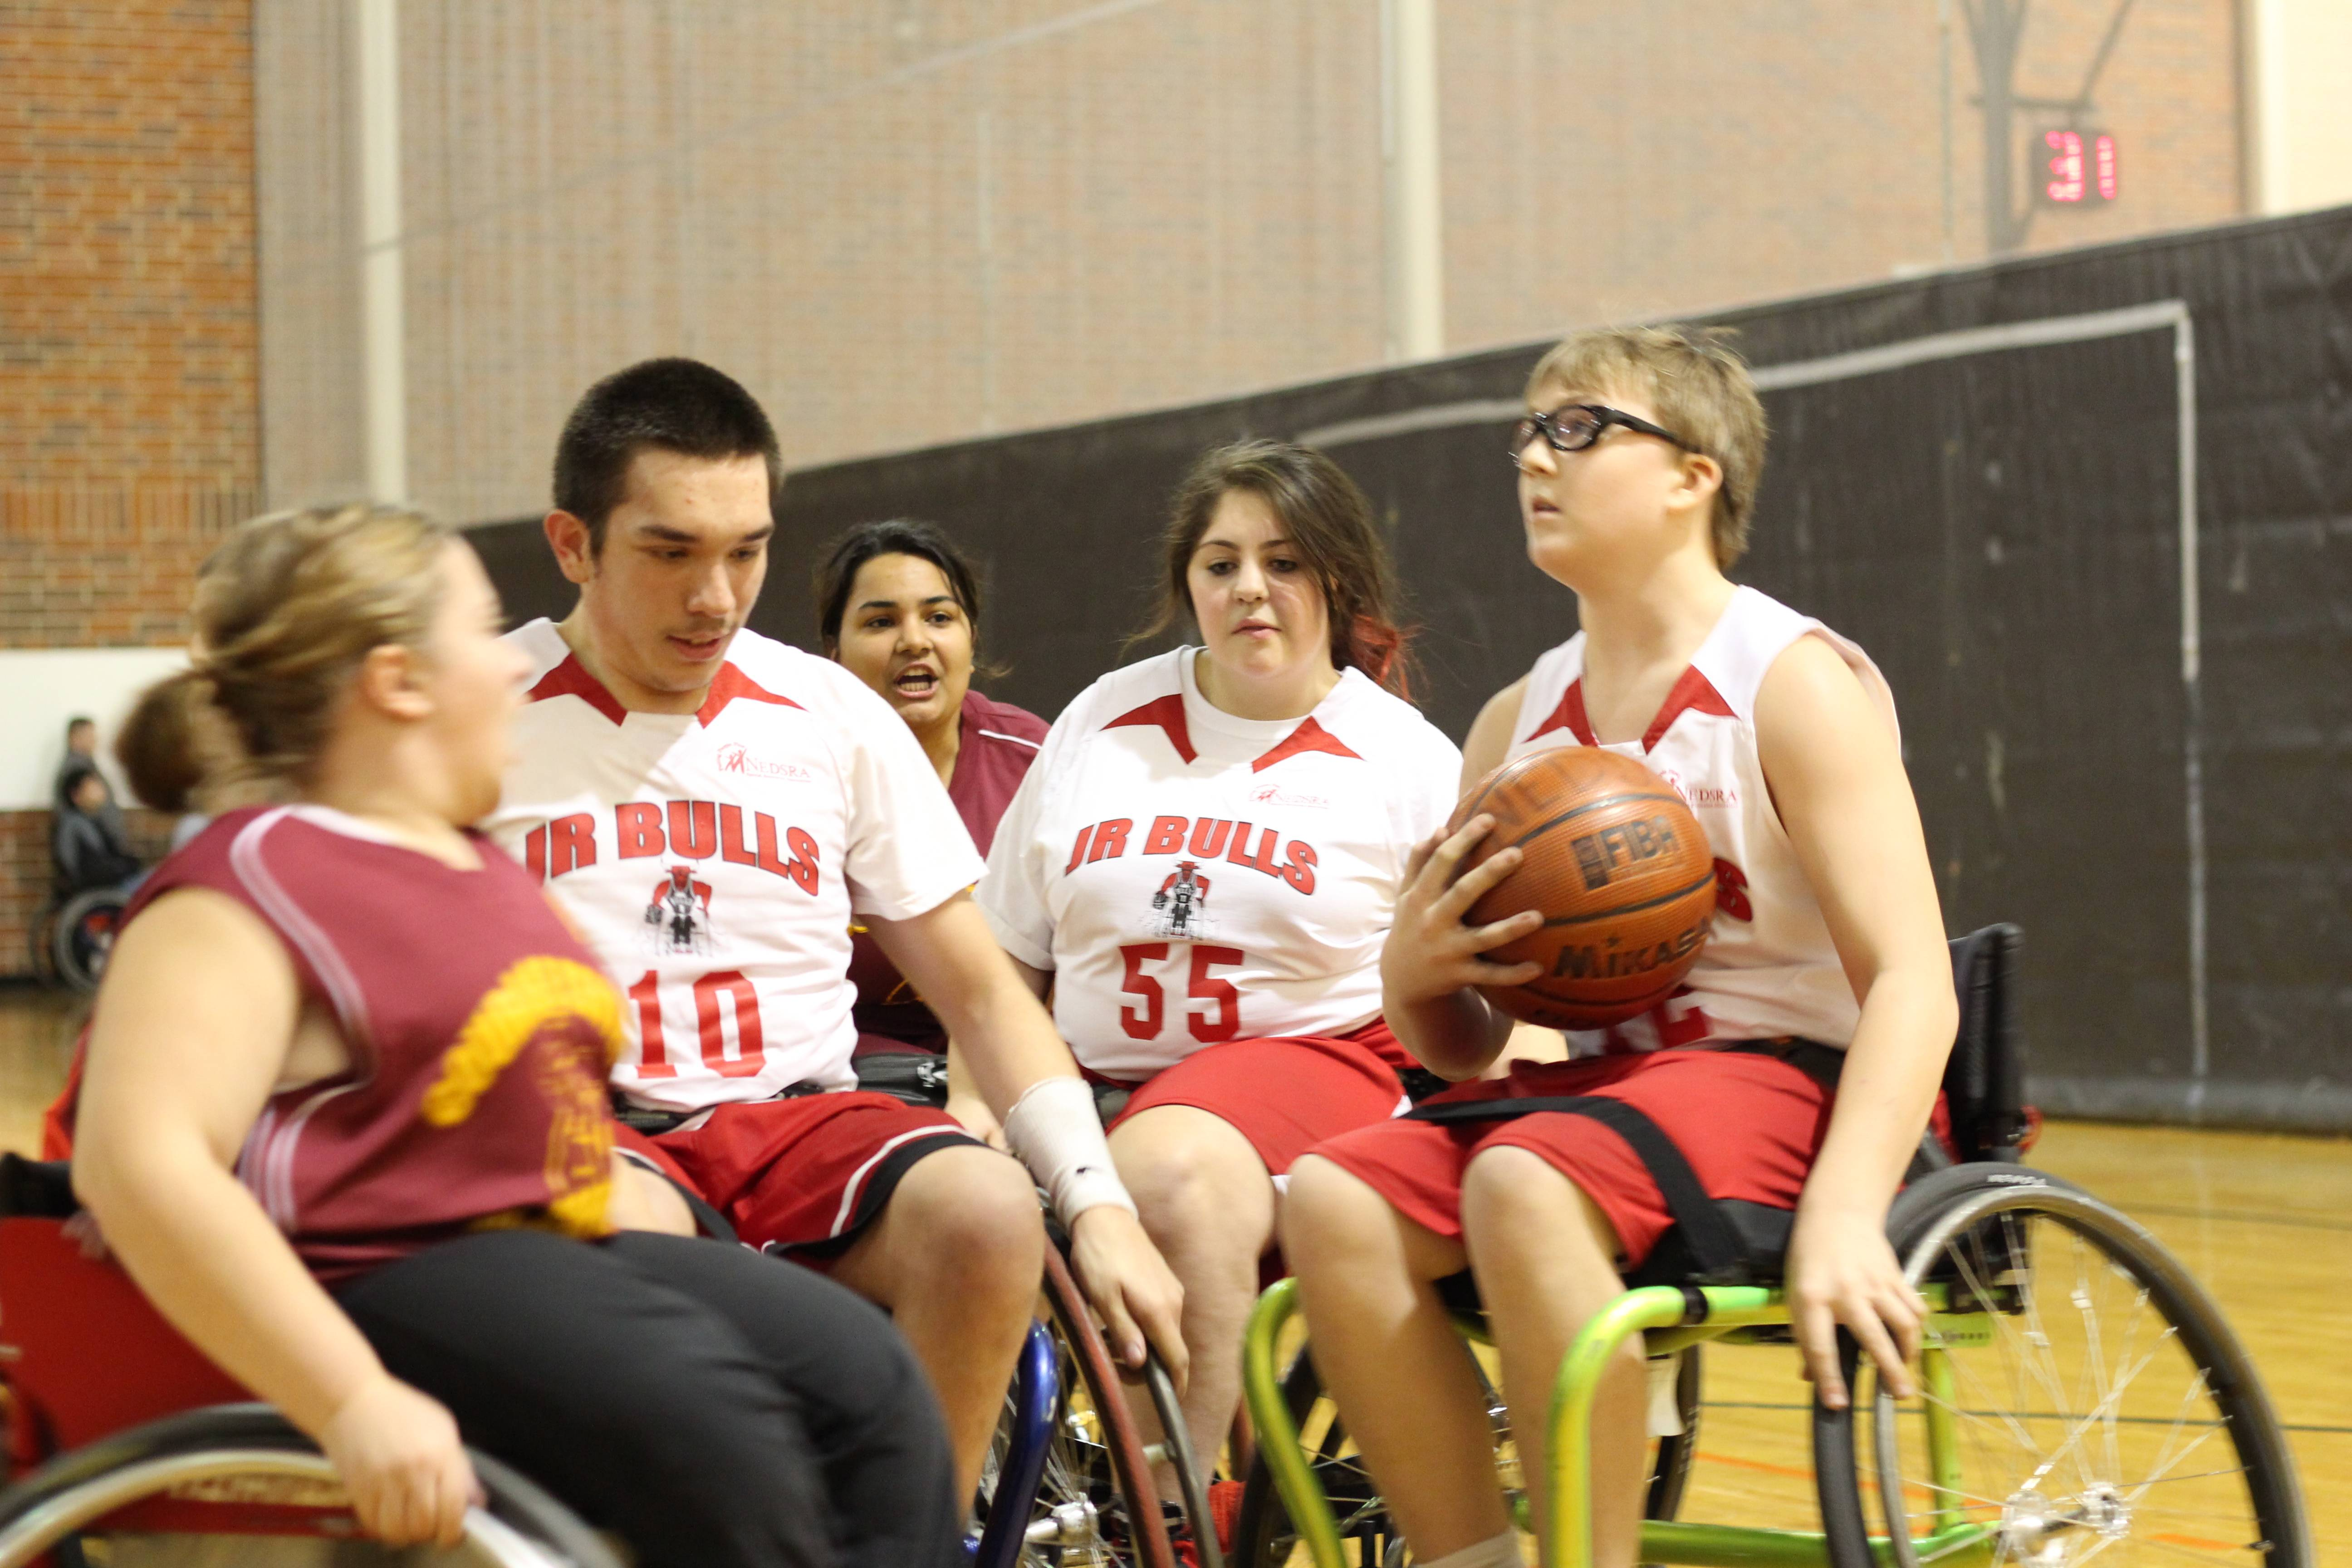 Addison players Ryan Glatchak, Nick Trojanowicz, and Melissa Schaefer play an exhibition wheelchair basketball game, against the Addison Police Department, this Sunday, April 7th at Addison Trail High School to raise money for their upcoming trip to Louisville for the National Championship.